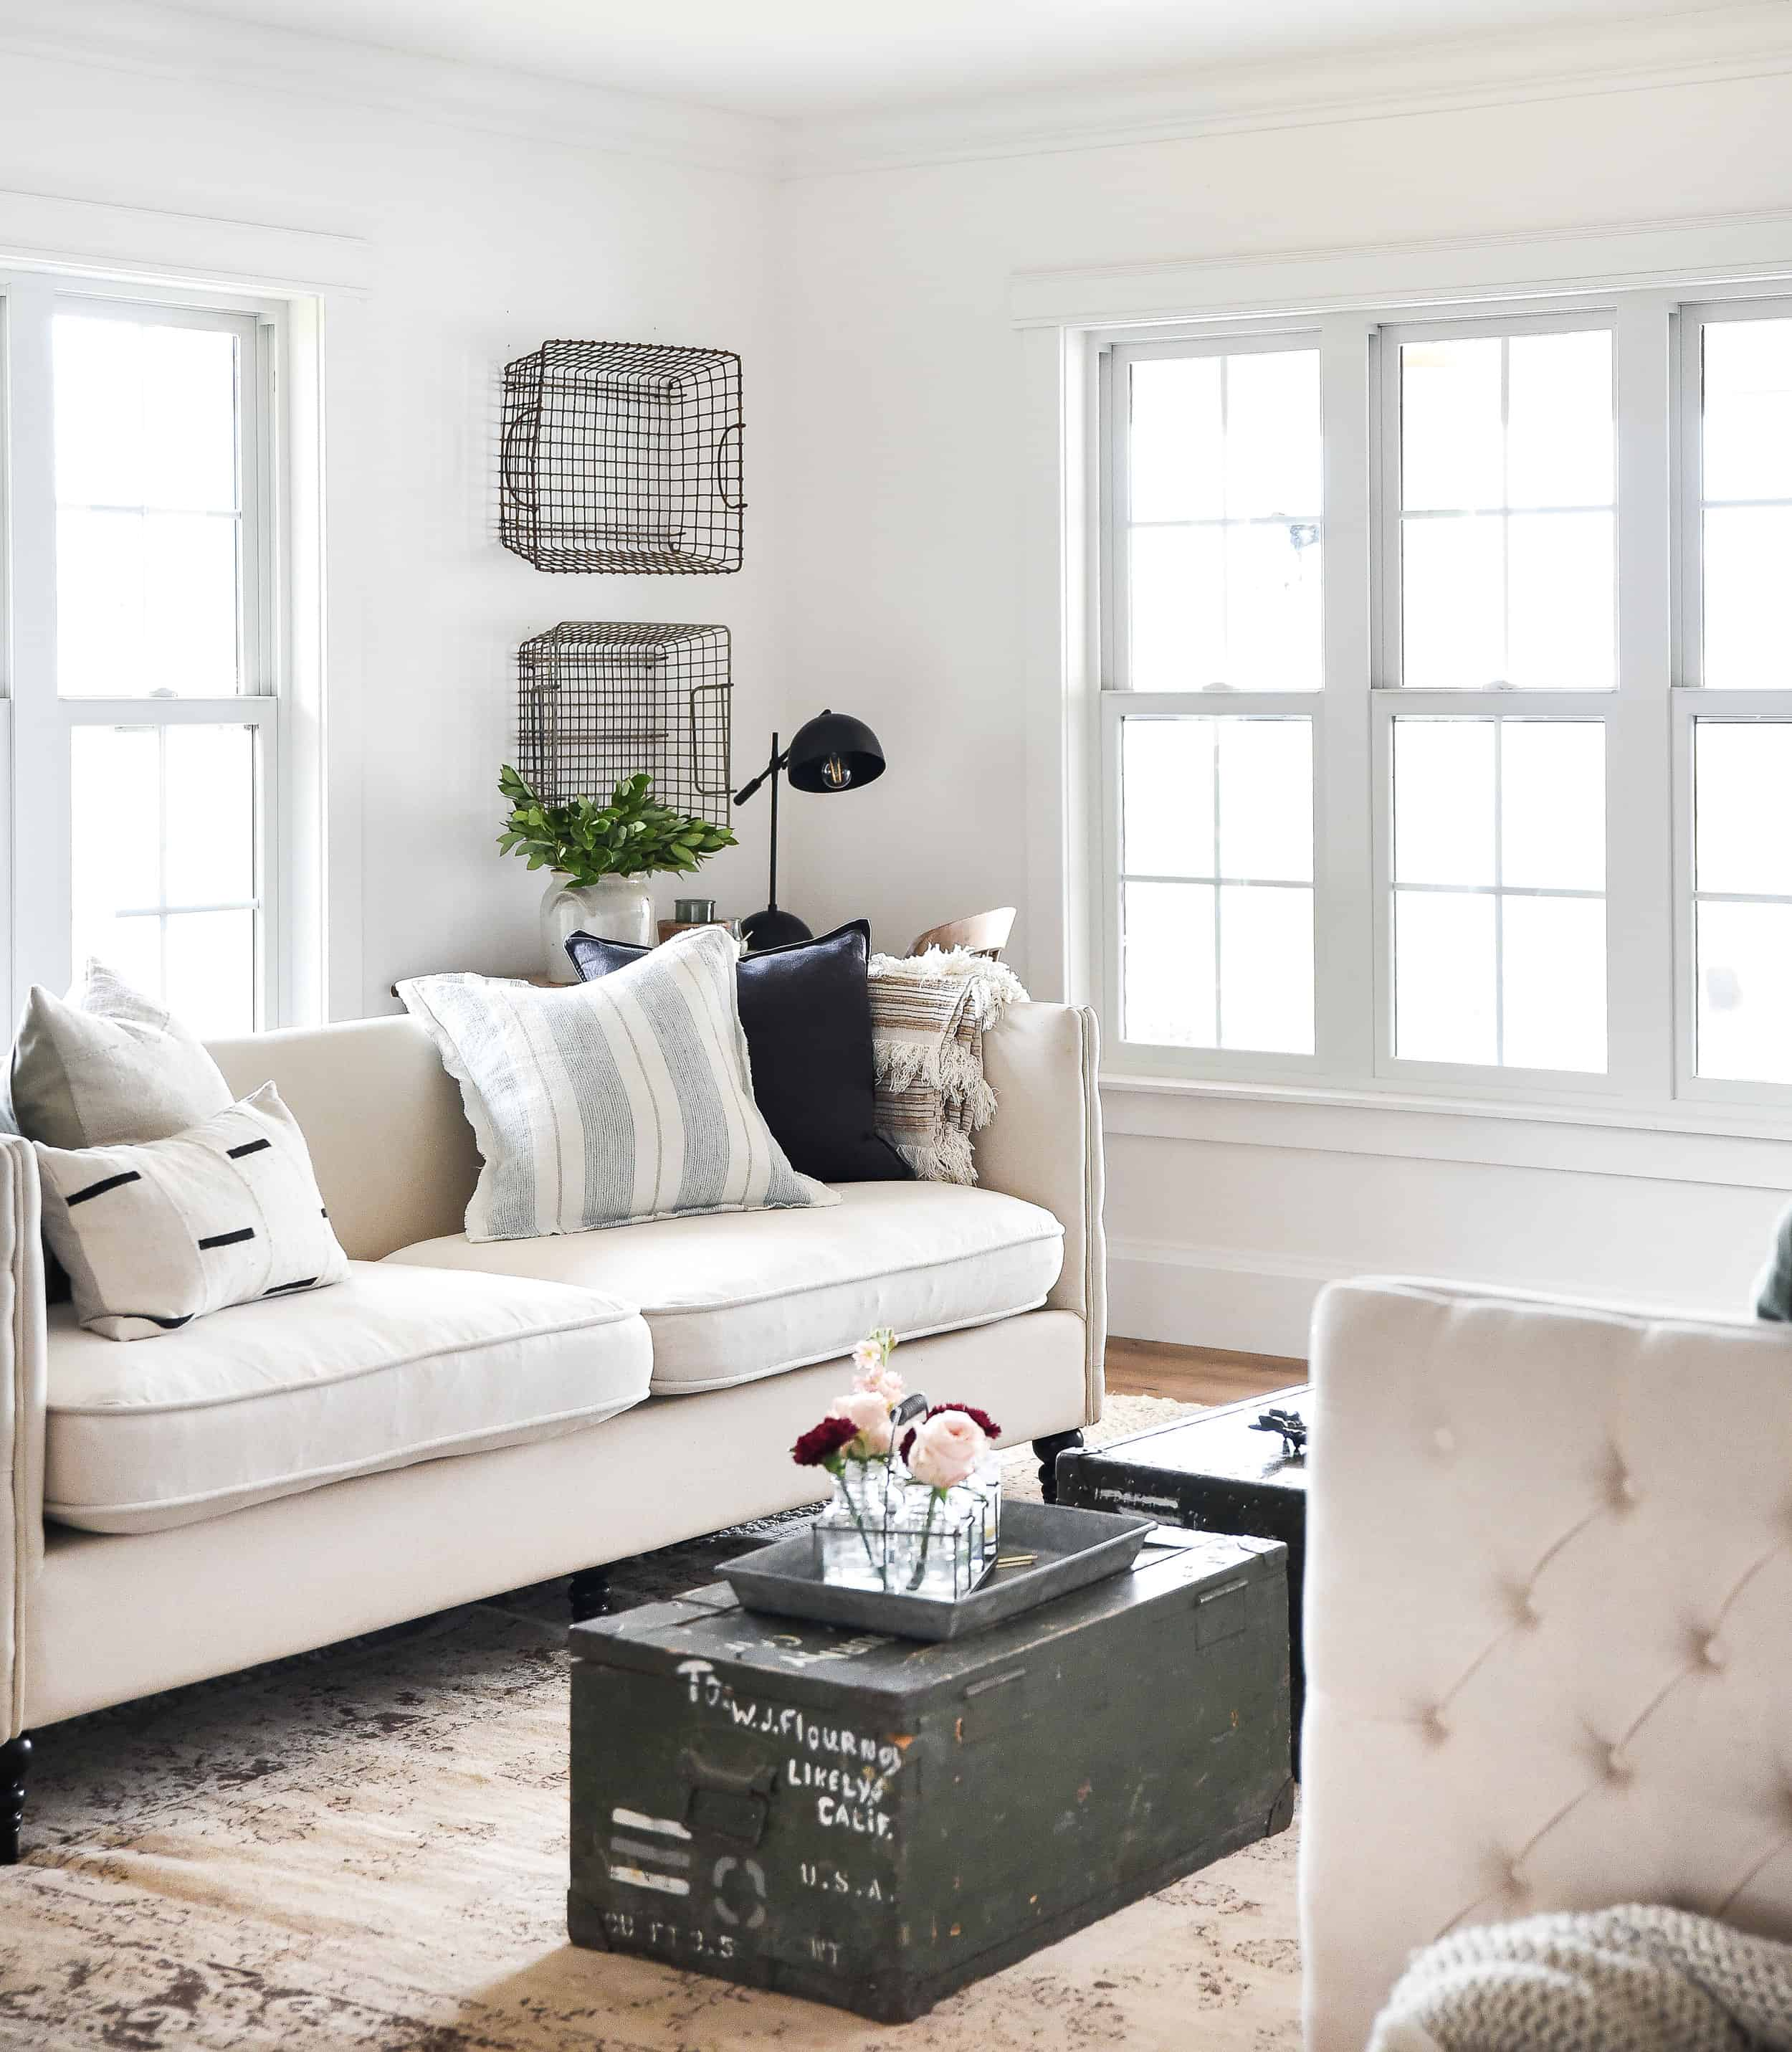 Although spring hasn't quite arrived, I have already started to change things around hoping to usher in the new season! Take a peek into our spring home and get inspired with decor ideas for your own home!